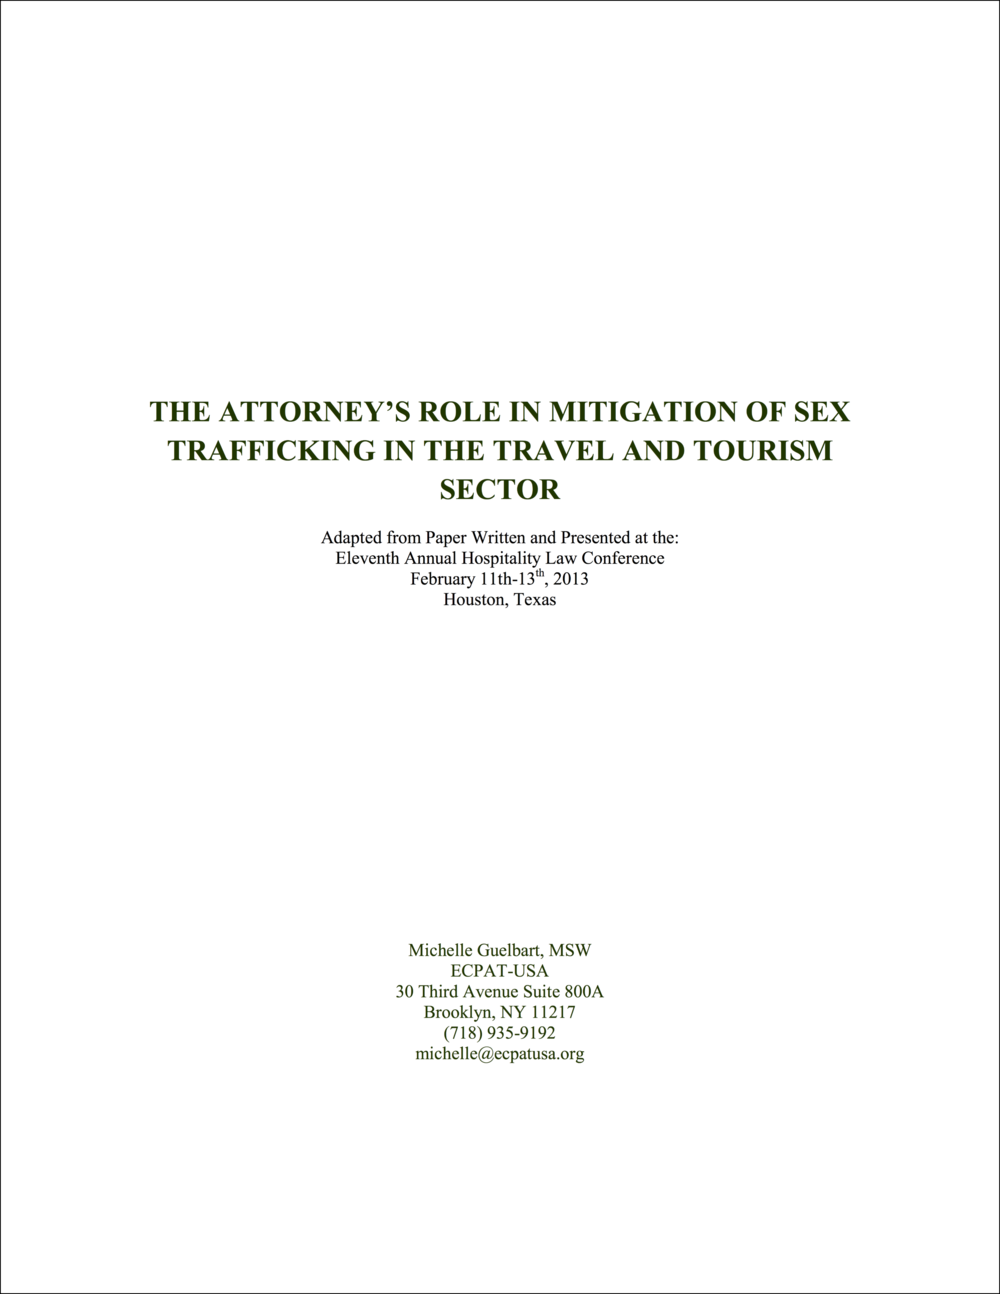 ECPAT-USA_AttorneysRole_Cover